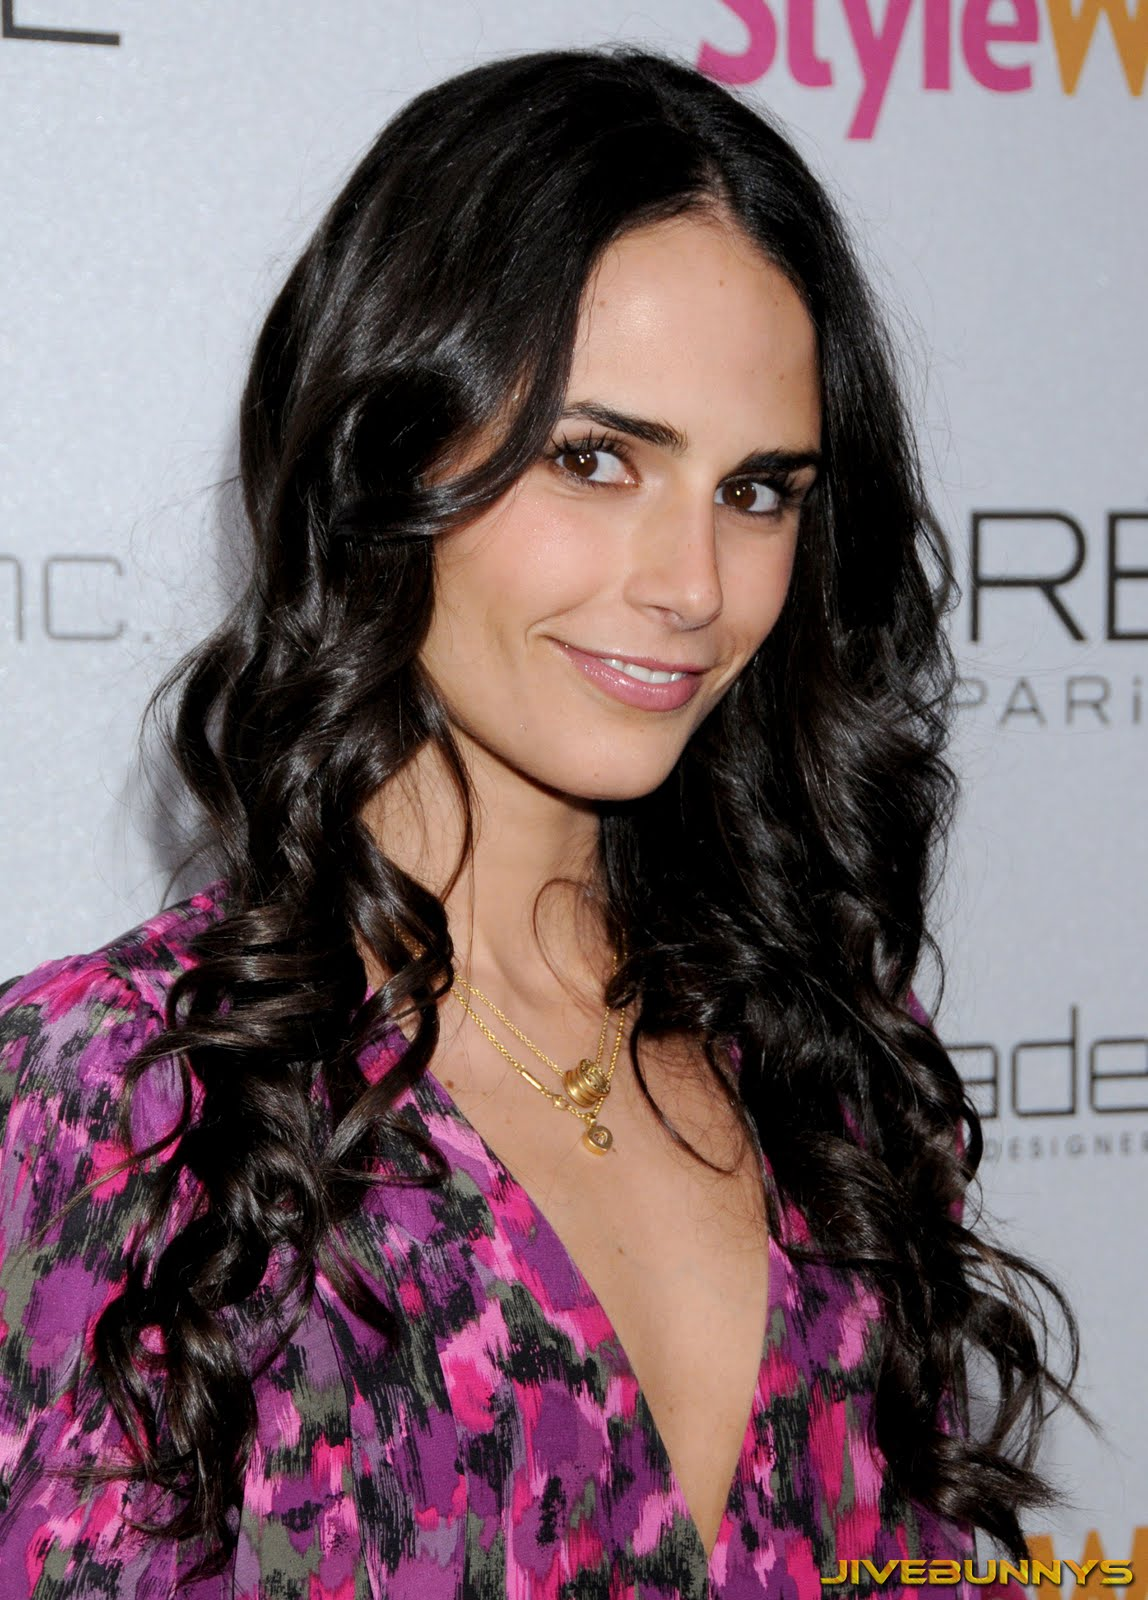 Jordana Brewster special pictures | Film Actresses